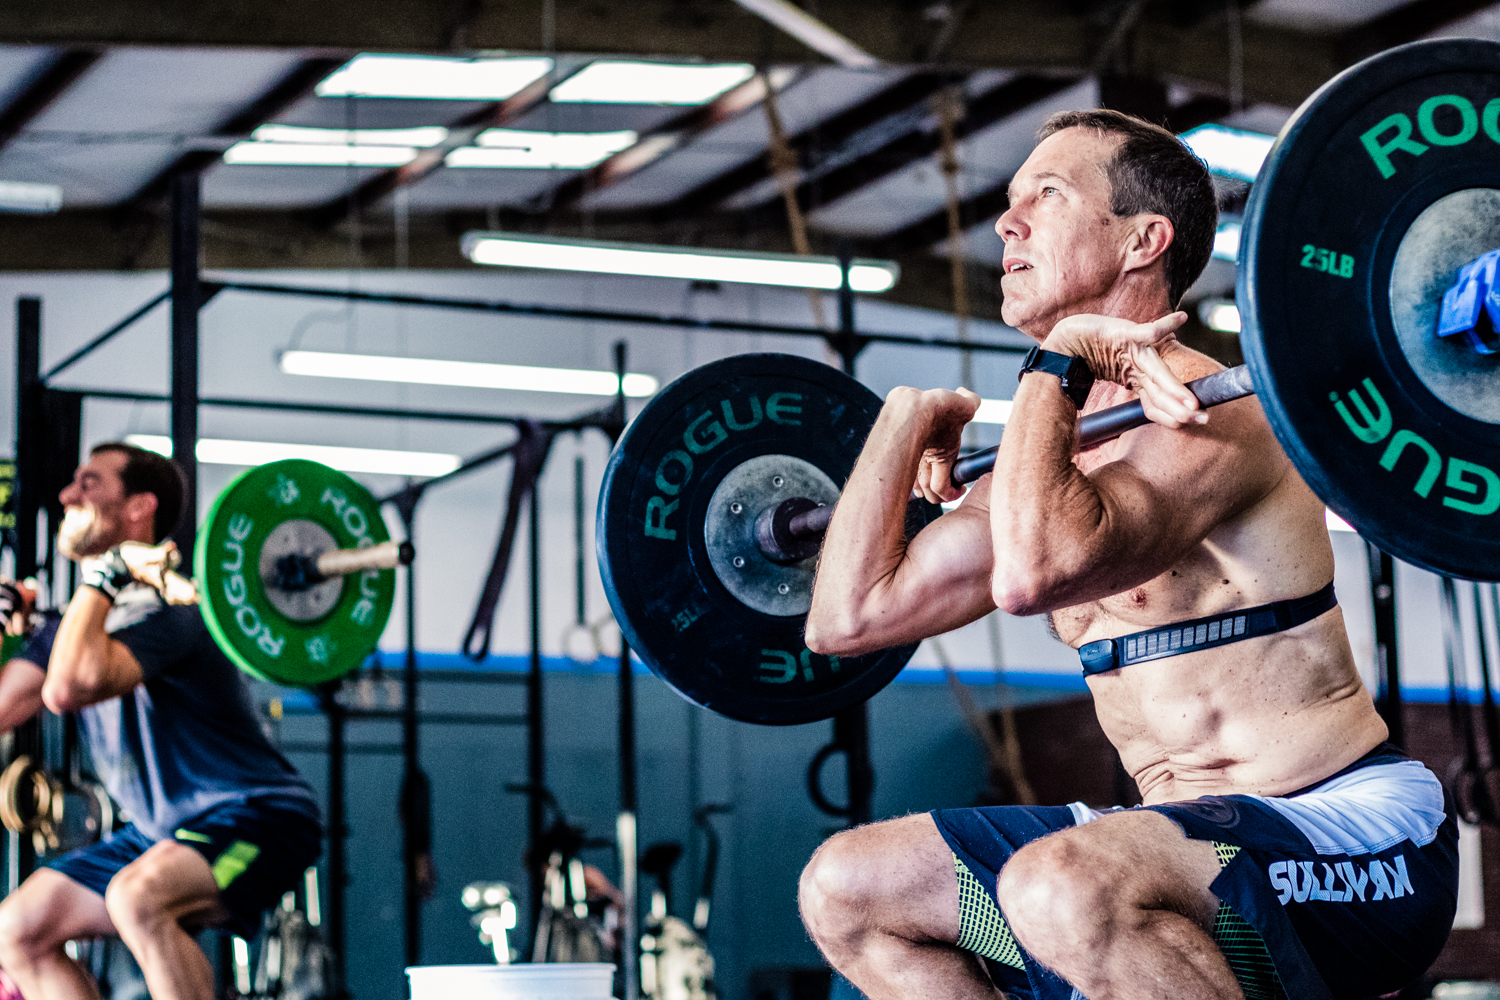 Chuck Sullivan at  CrossFit Vero Beach